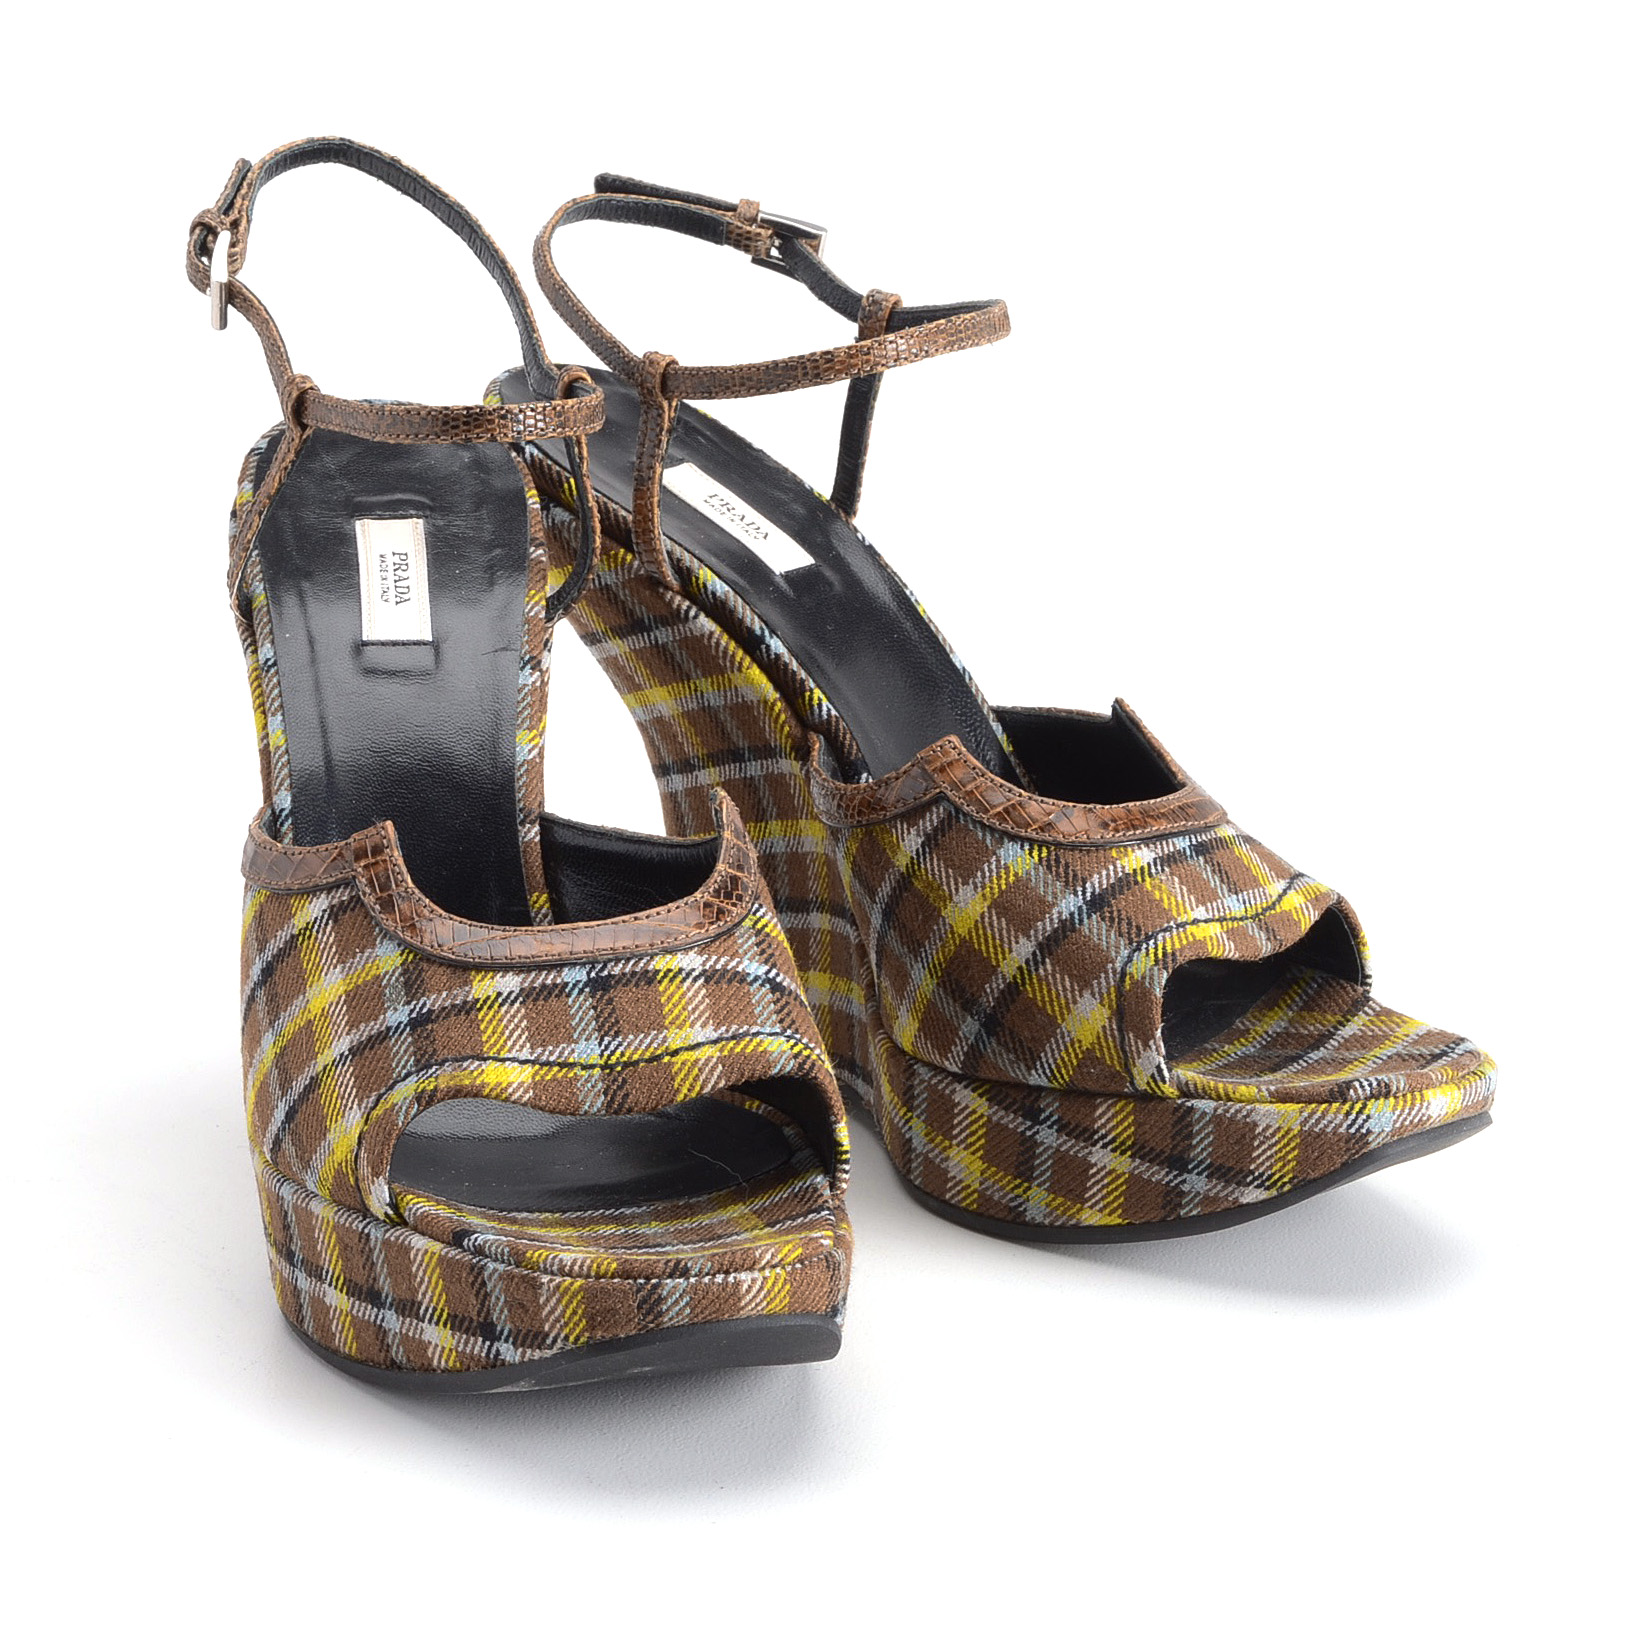 buy cheap low shipping discount lowest price Prada Lizard-Trimmed Plaid Wedges 2014 new online hot sale cheap online lqLeVi